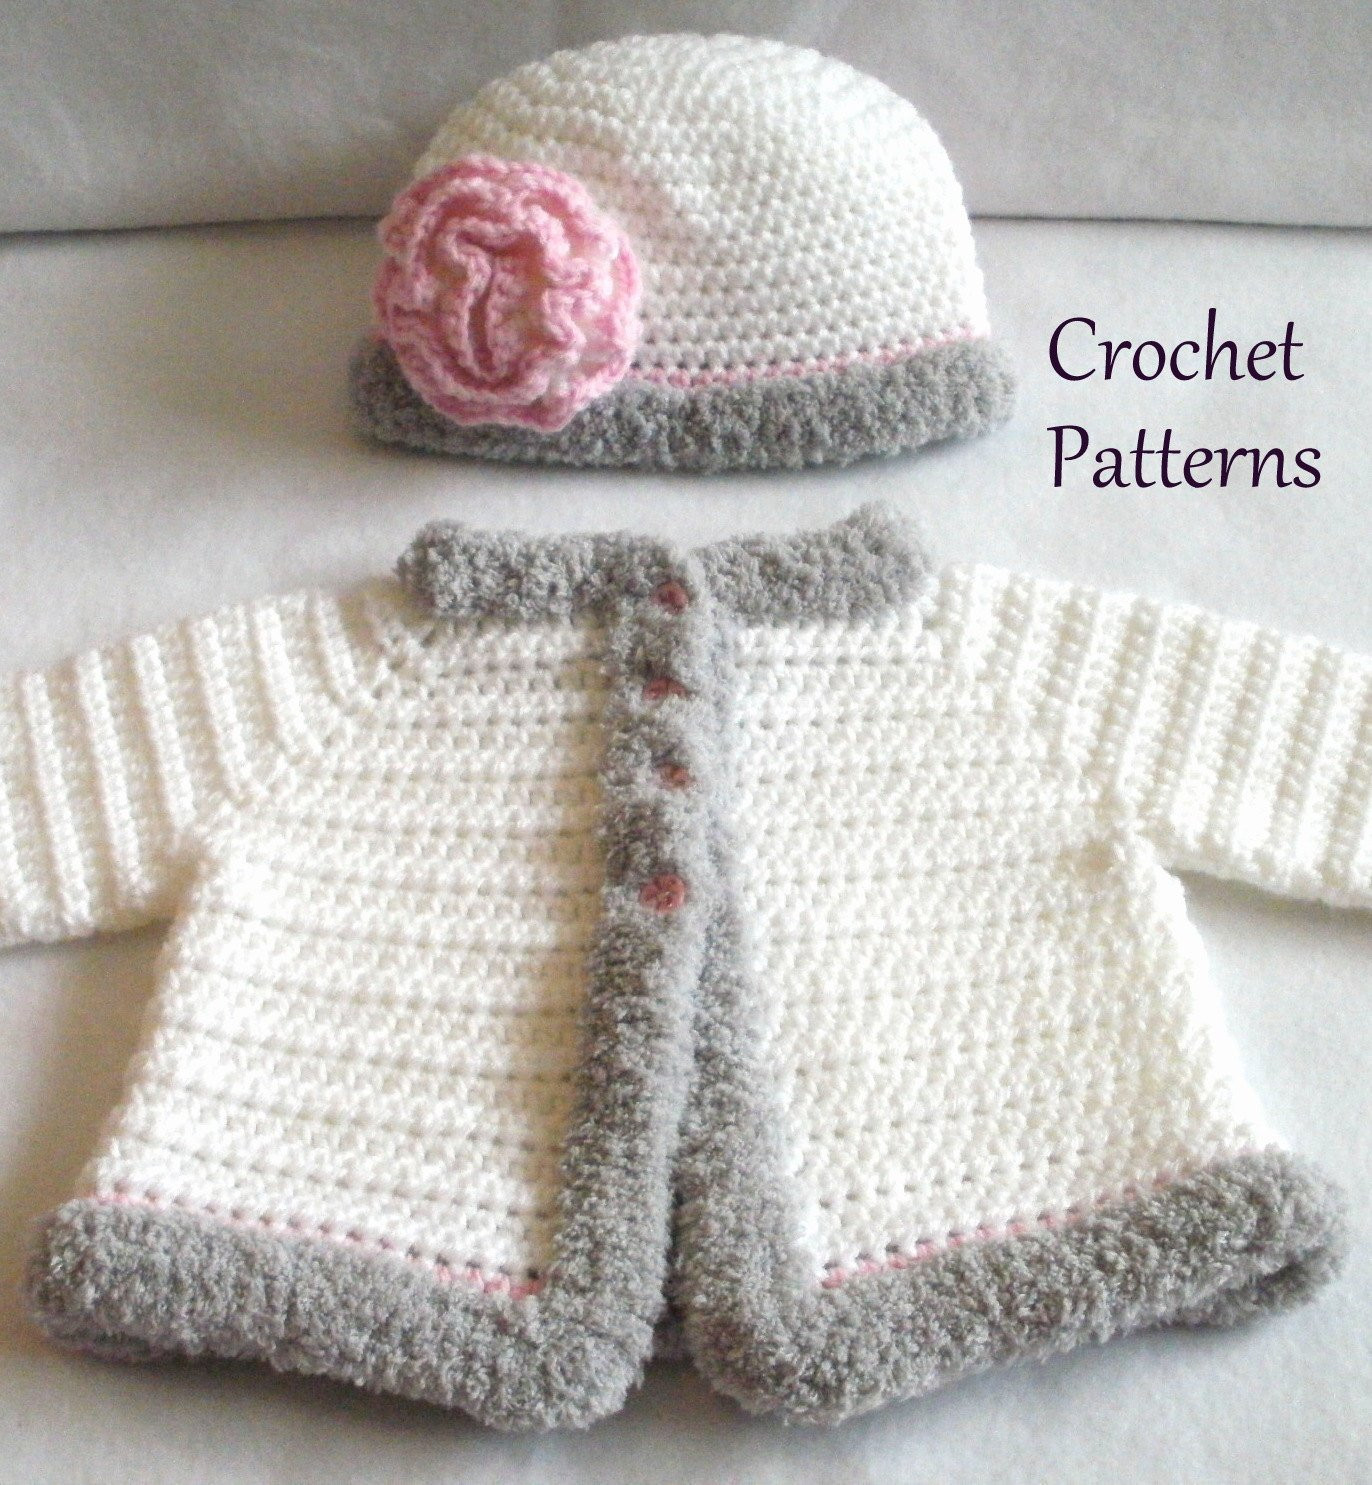 Crochet Baby Set New Crochet Pattern Baby Sweater & Hat Patterns the Laura Baby Of Charming 49 Pics Crochet Baby Set